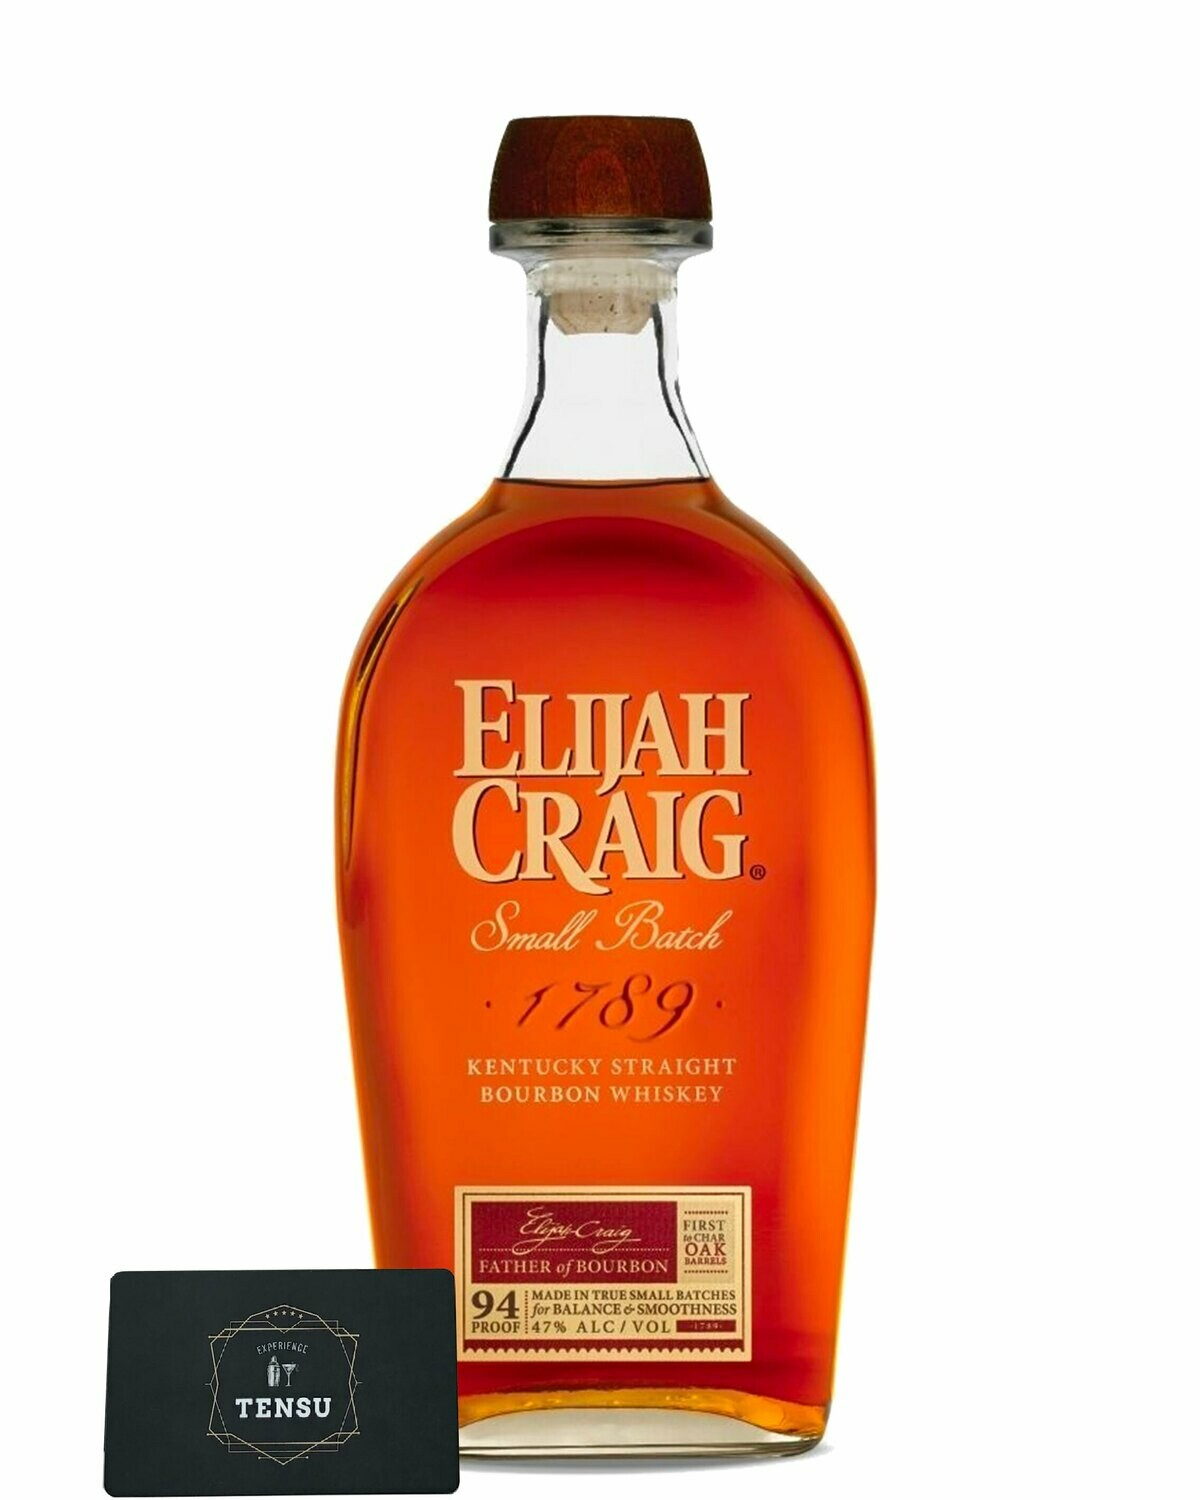 Elijah Craig 12 Years Old Small Batch